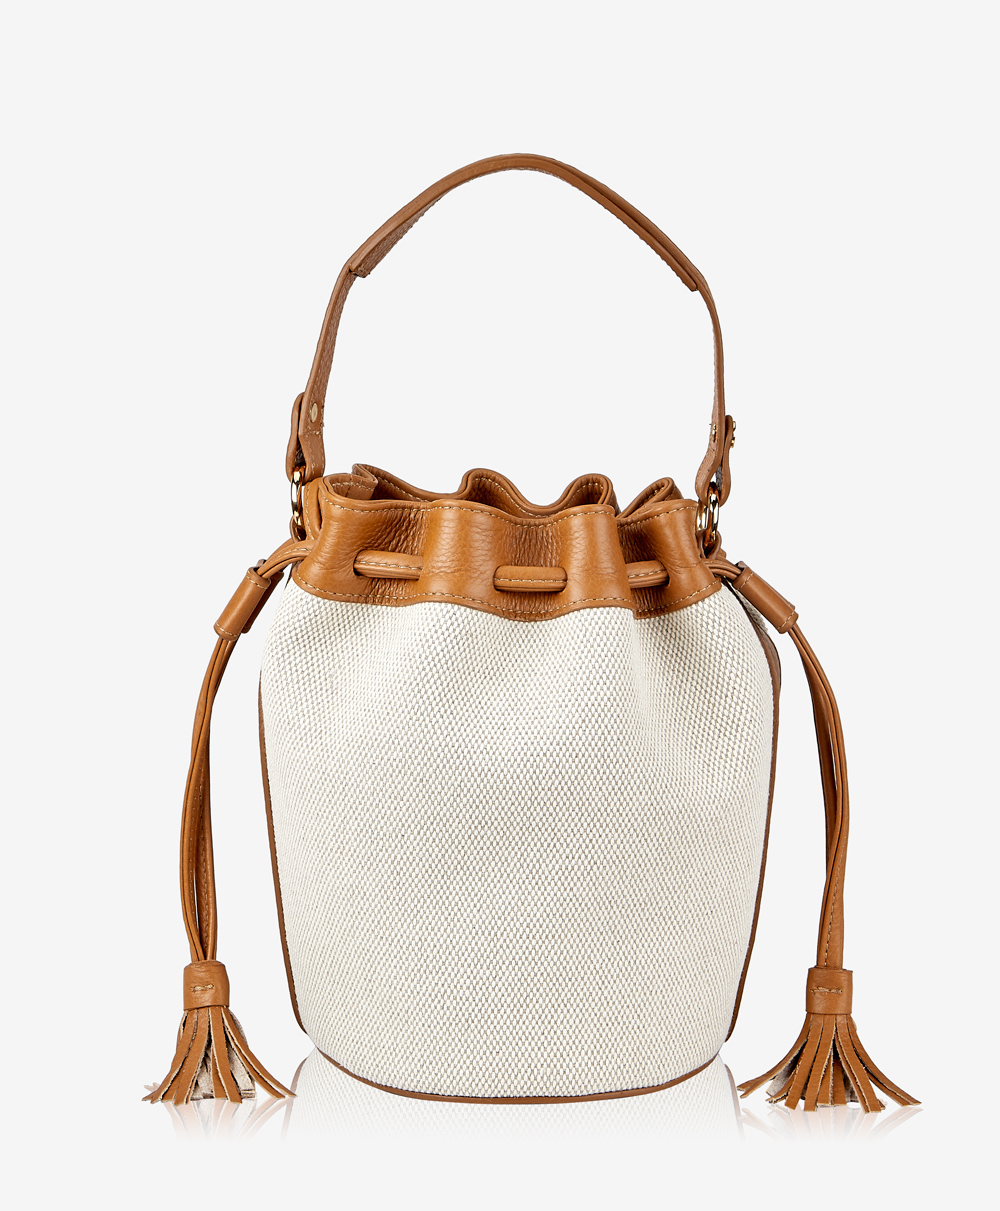 GiGi New York Genevieve Bucket Bag Italian Canvas with Camel Calfskin Leather